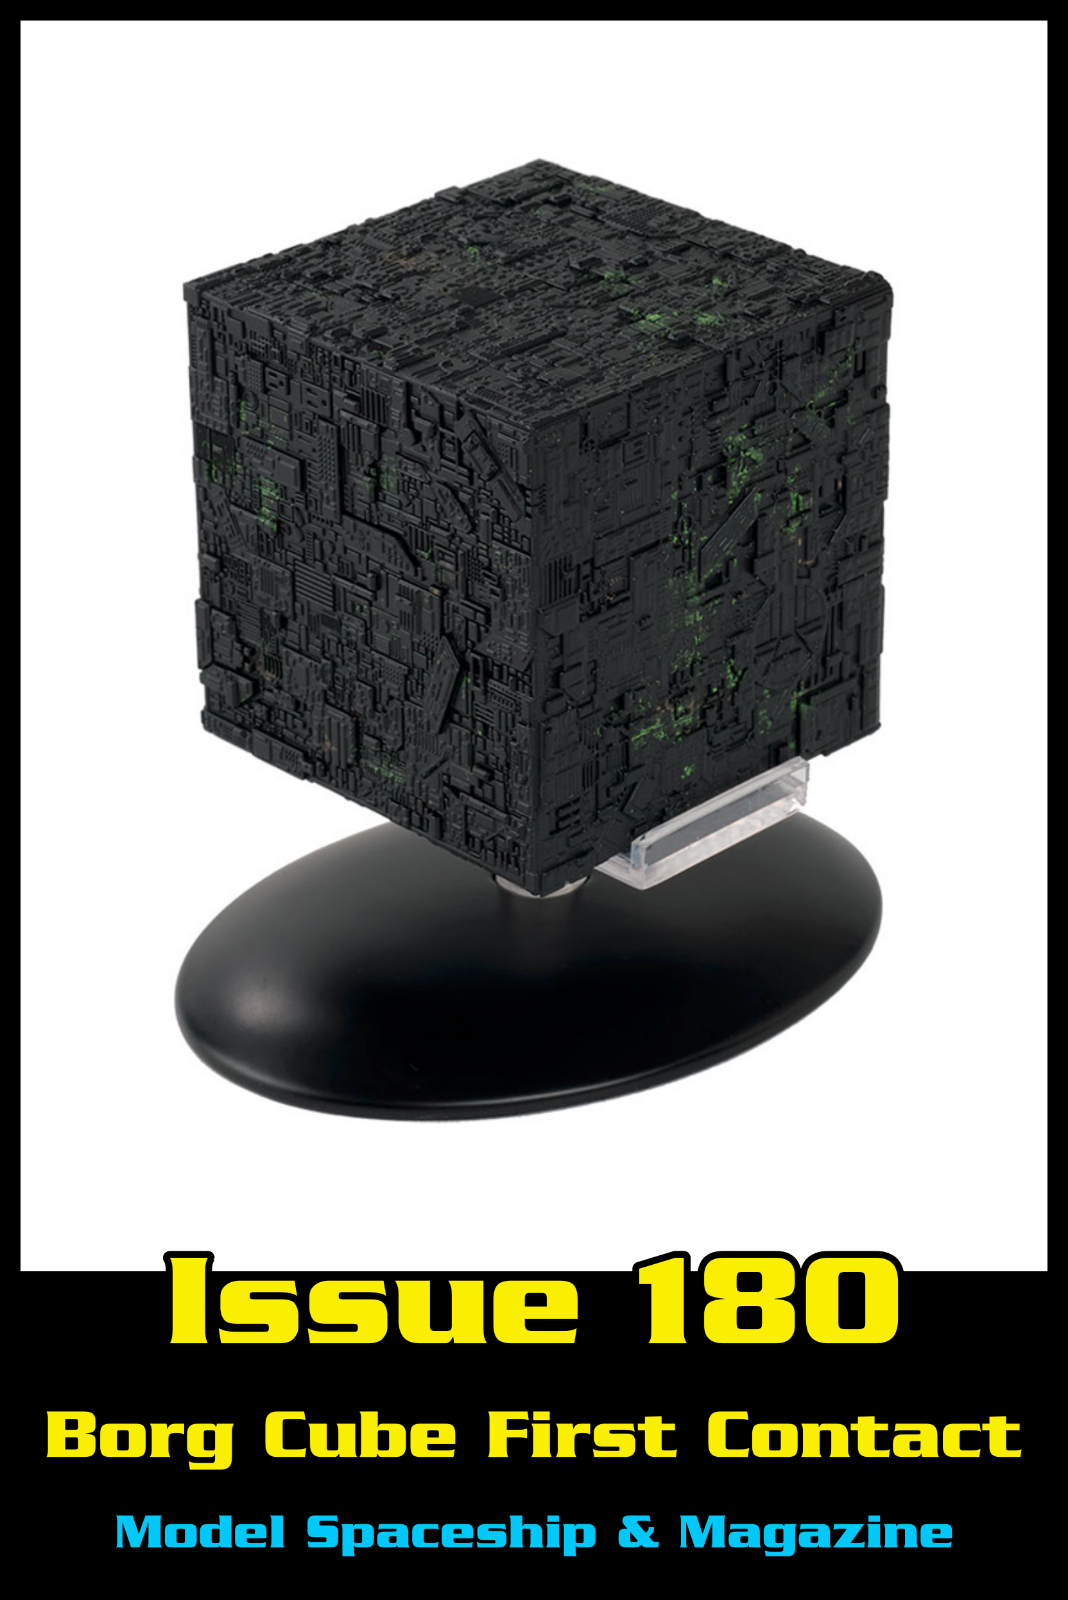 Issue 180: Borg Cube First Contact